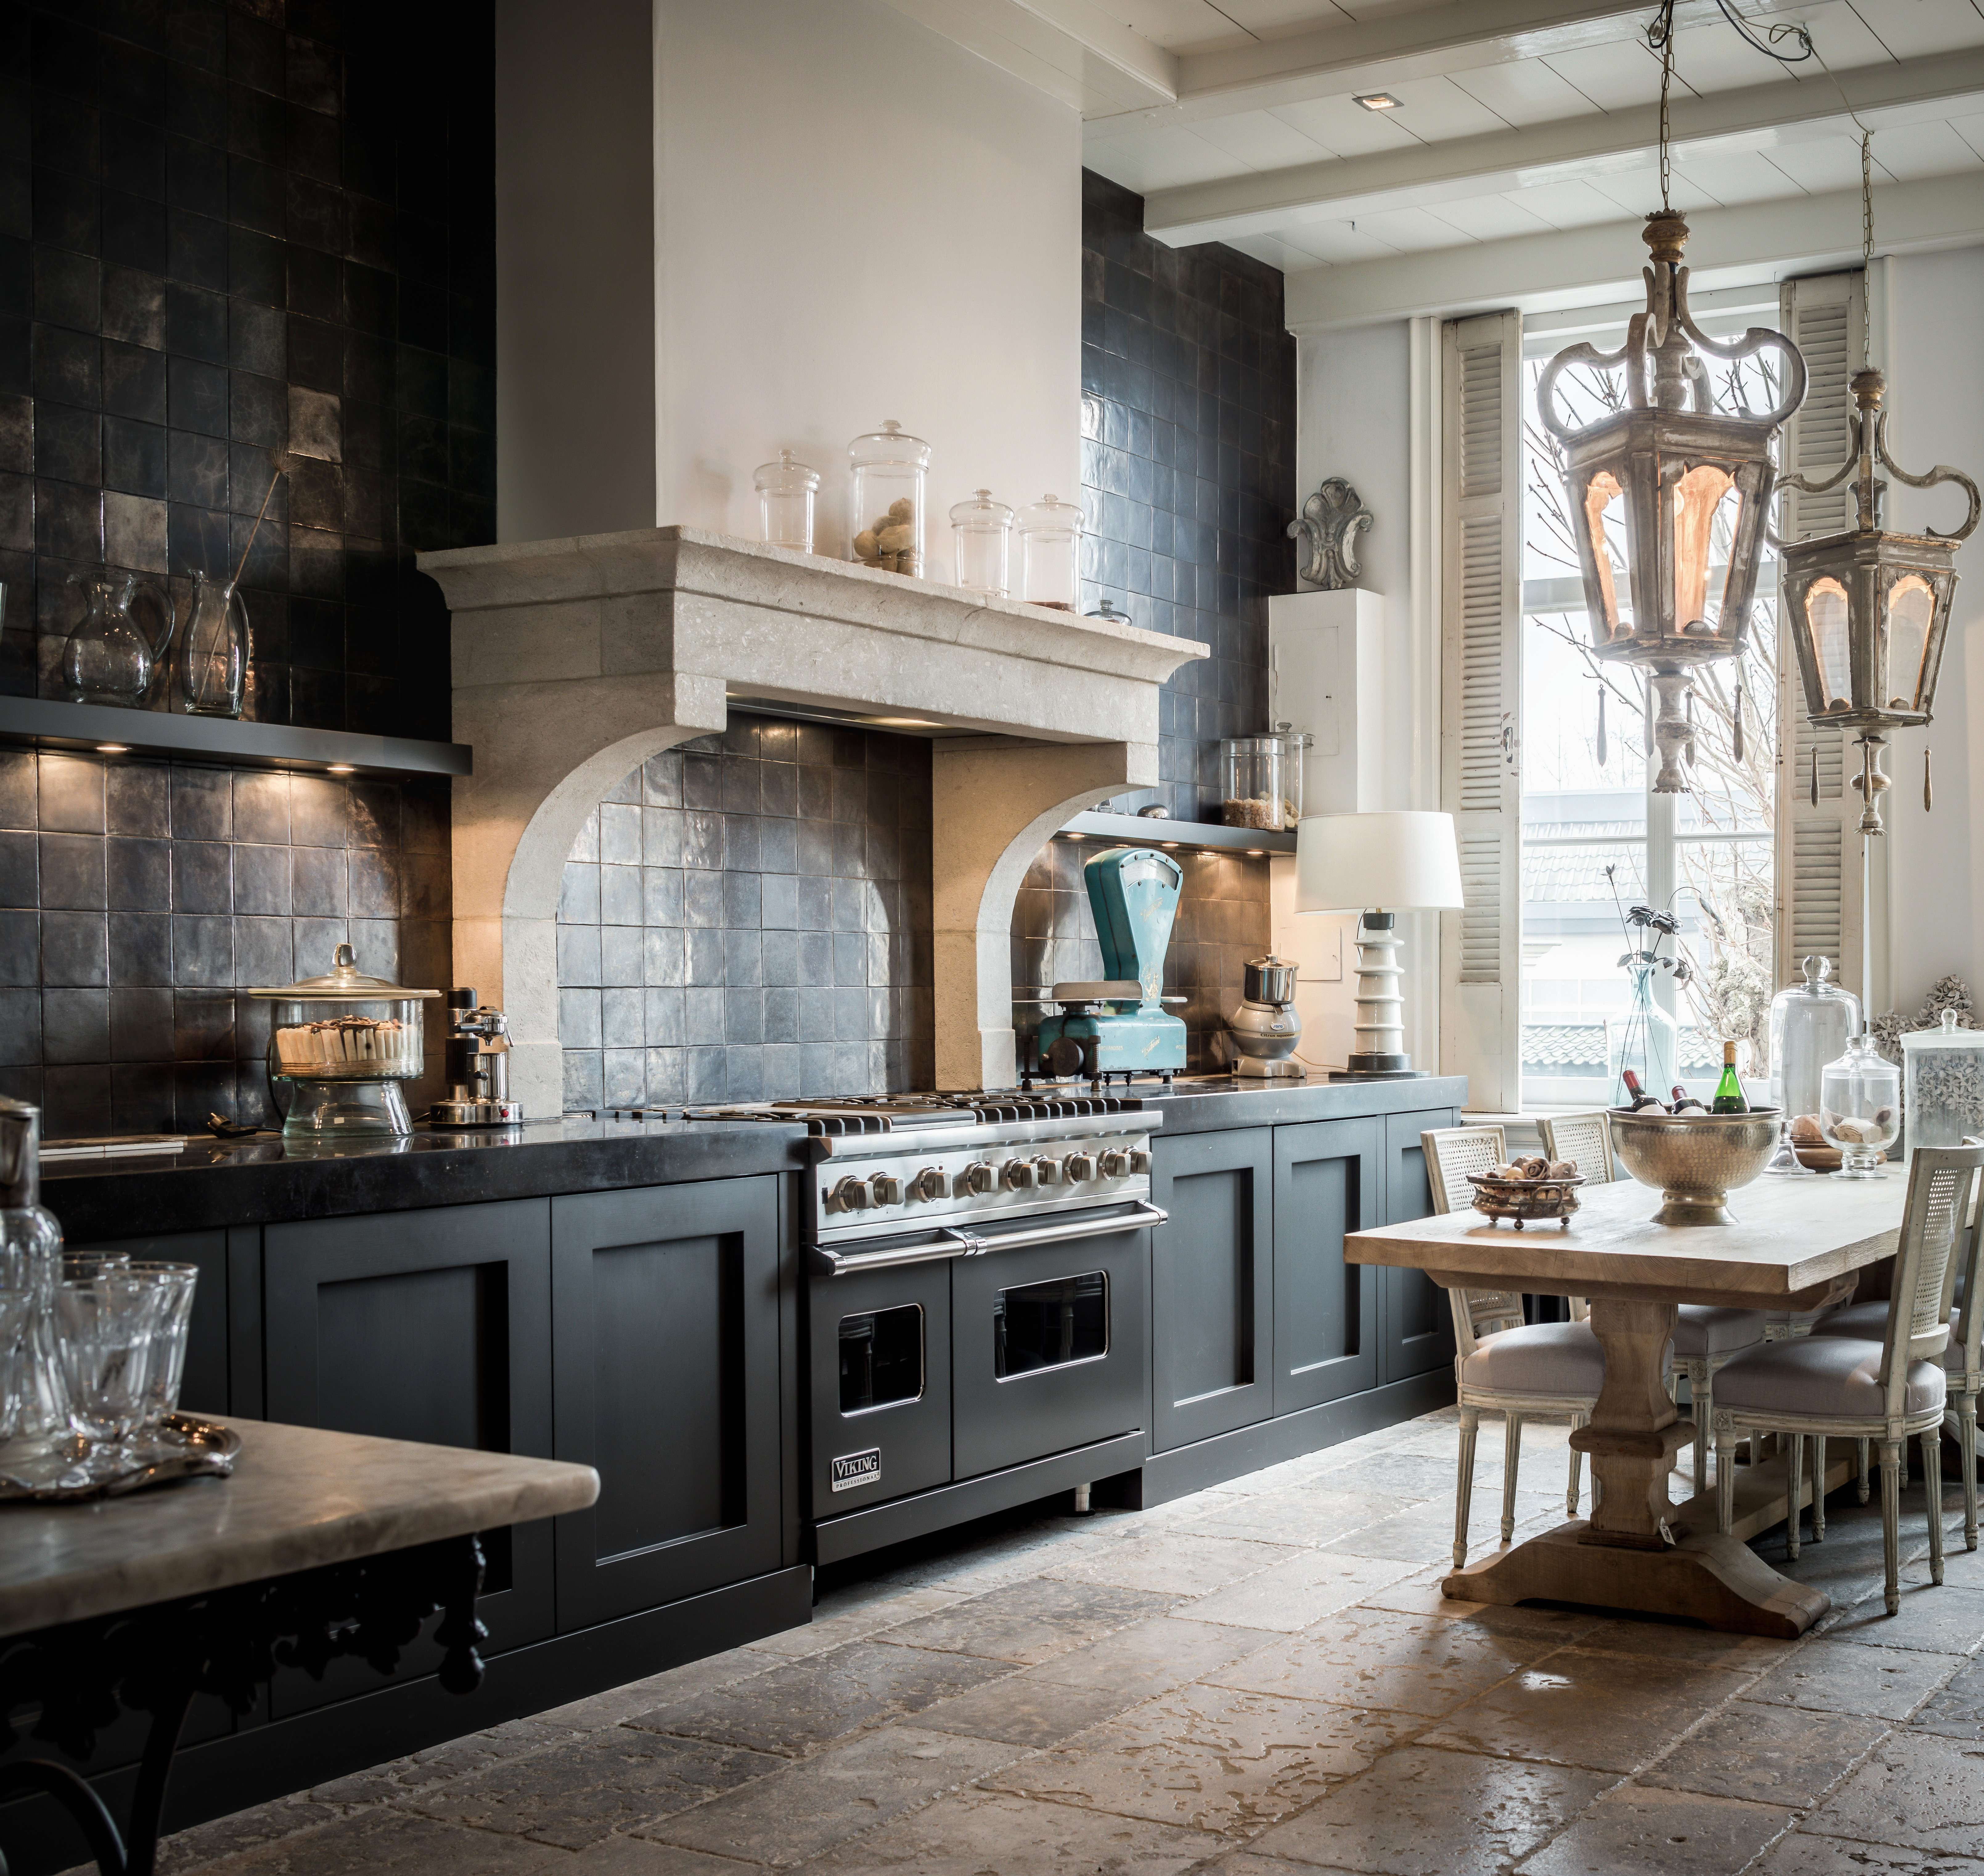 dark hardwood floors with oak cabinets of 36 inspirational kitchen ideas dark cabinets image living room intended for kitchen ideas dark cabinets ideas interior design inspiration lovely kitchen decor items luxury kitchen kitchen floors kitchen floors 0d